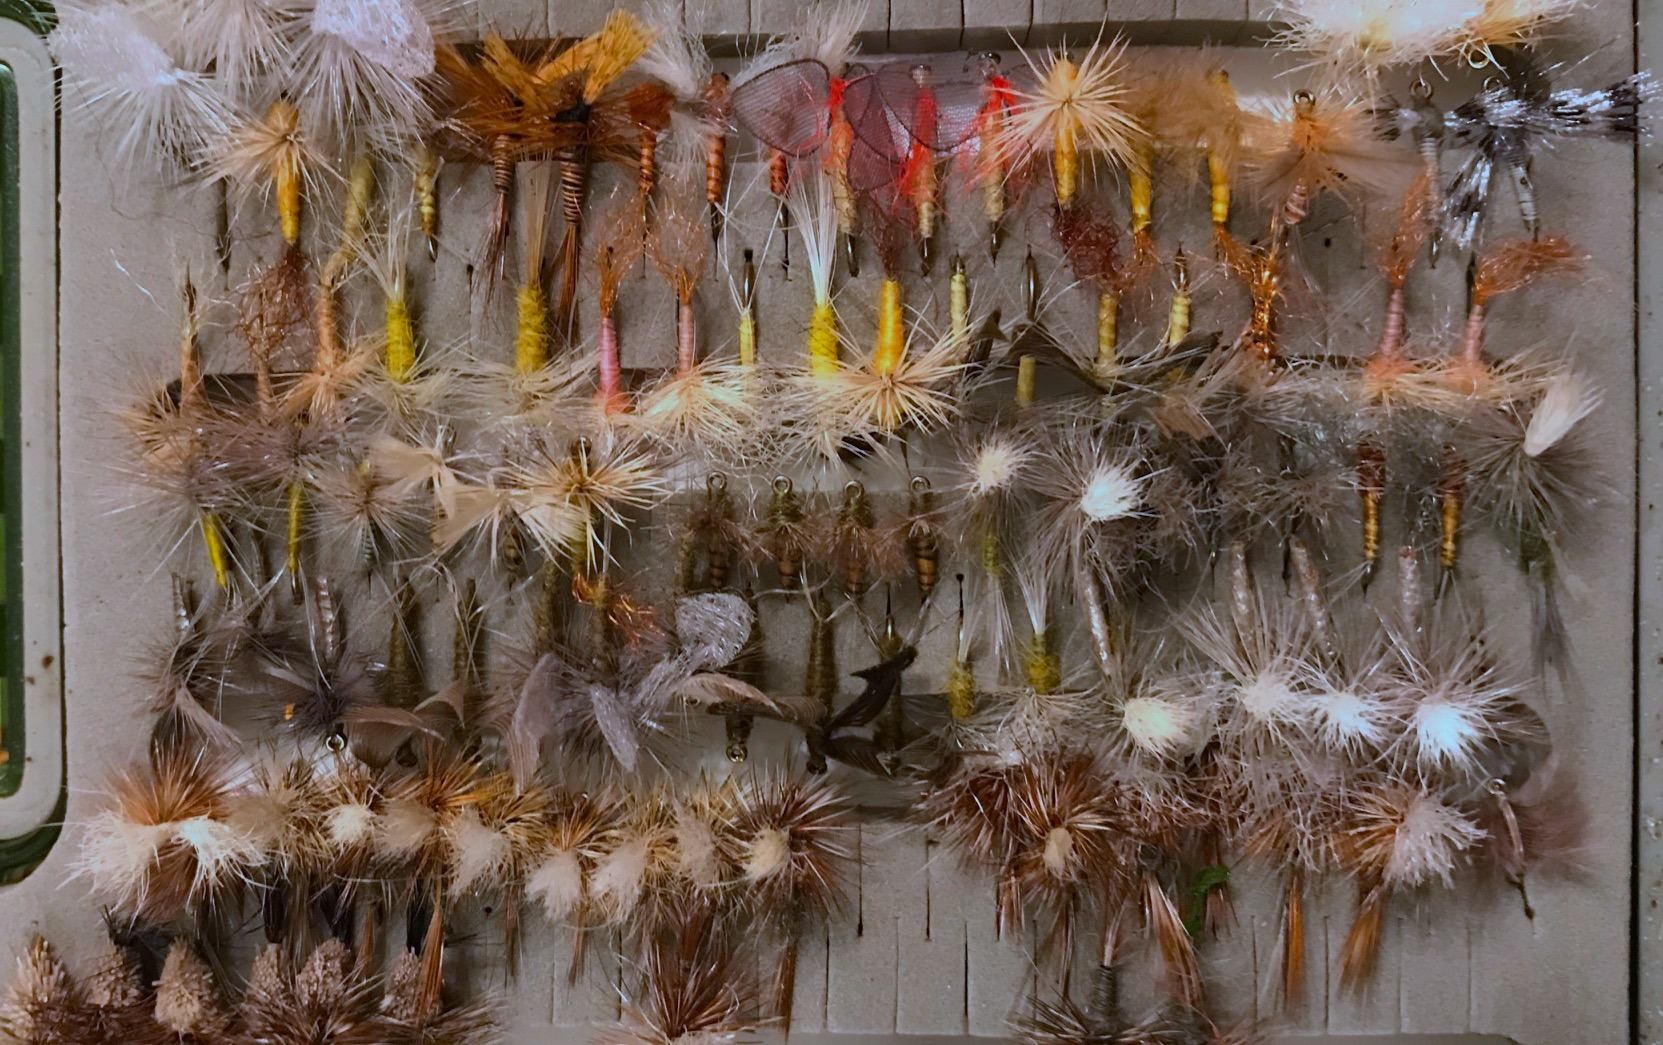 A box full of dry flies.